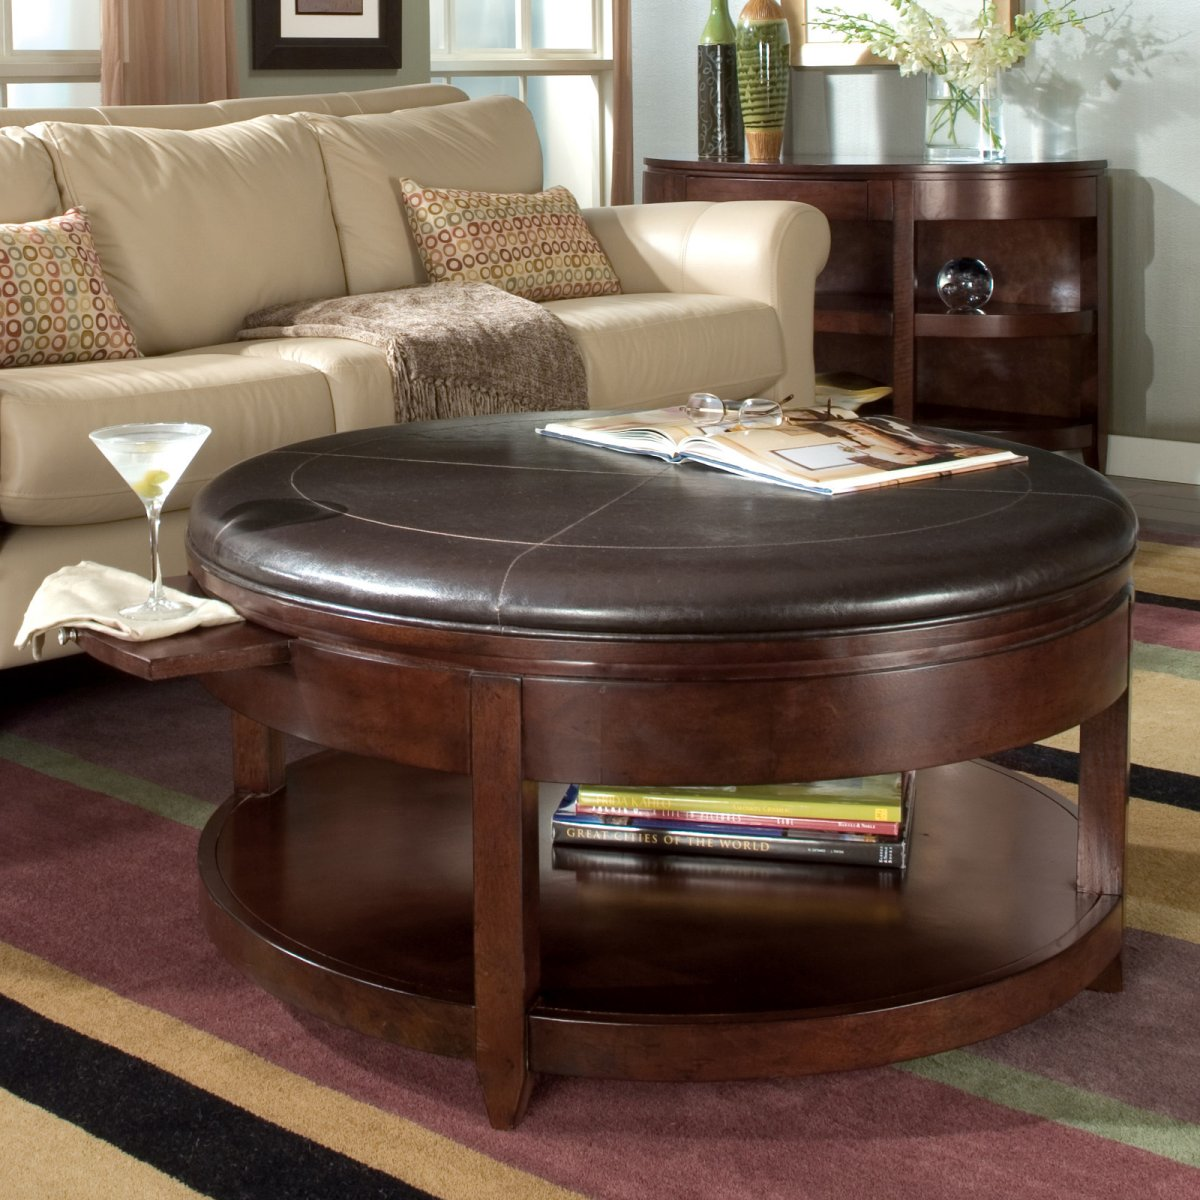 ottoman-coffee-table-inspiration-design-round-ottoman-coffee-tables-on-table-design-ideas-ottoman-coffee-table (Image 4 of 10)